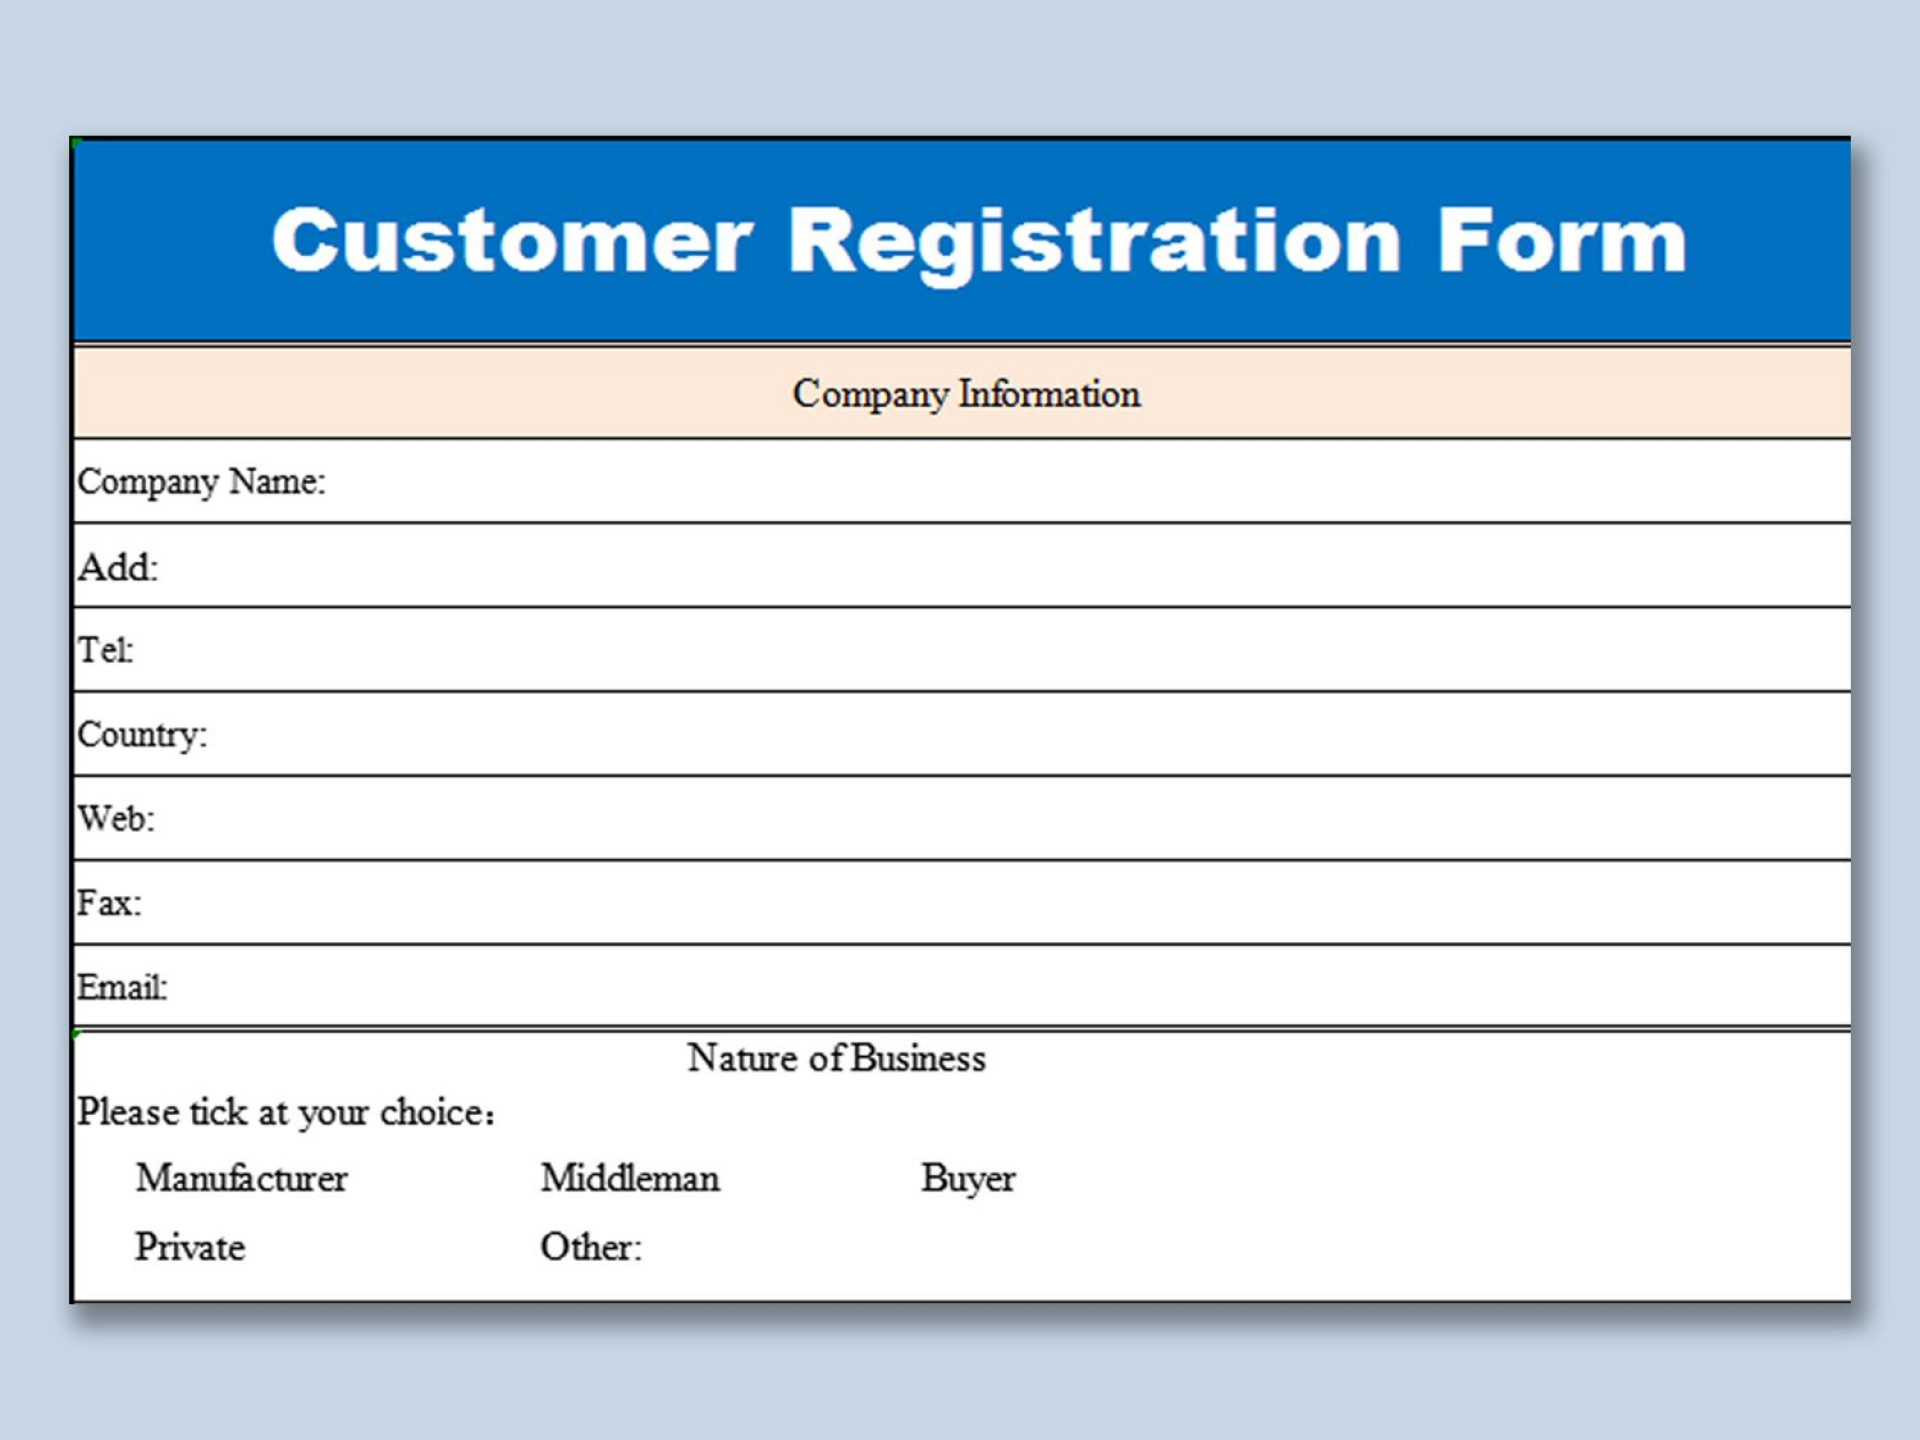 010 Excellent Registration Form Template Free Download Design  Bootstrap Student W3layout In Php1920